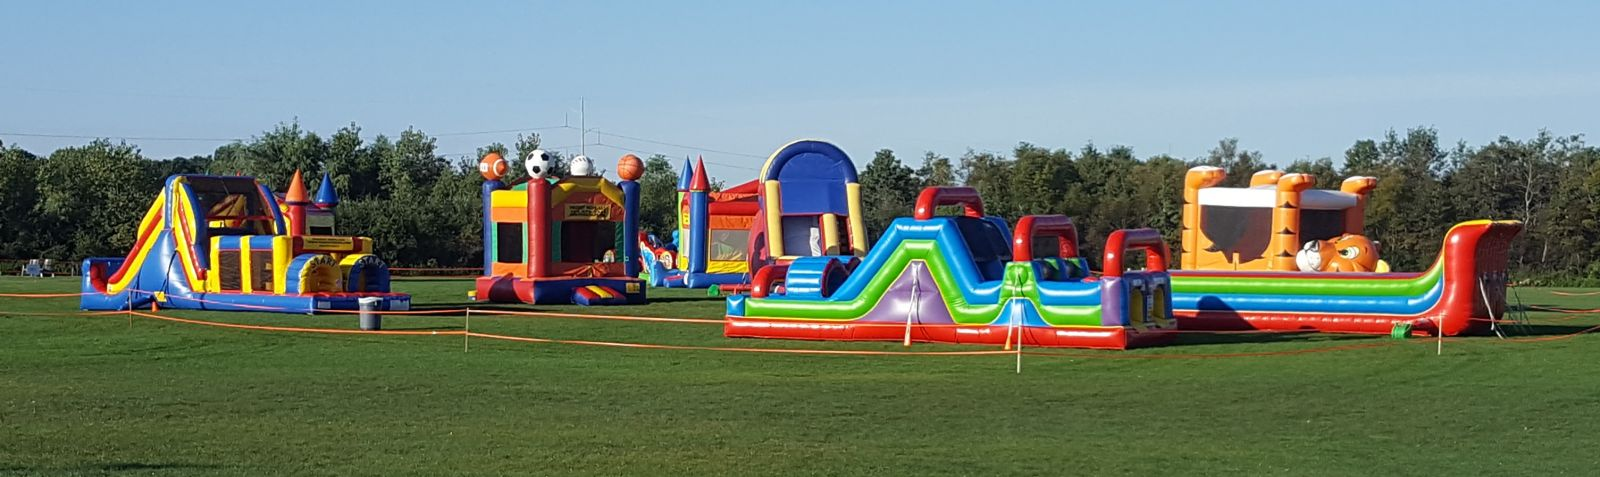 Sports Bounce house and other inflatables at field event by Froggy Hops